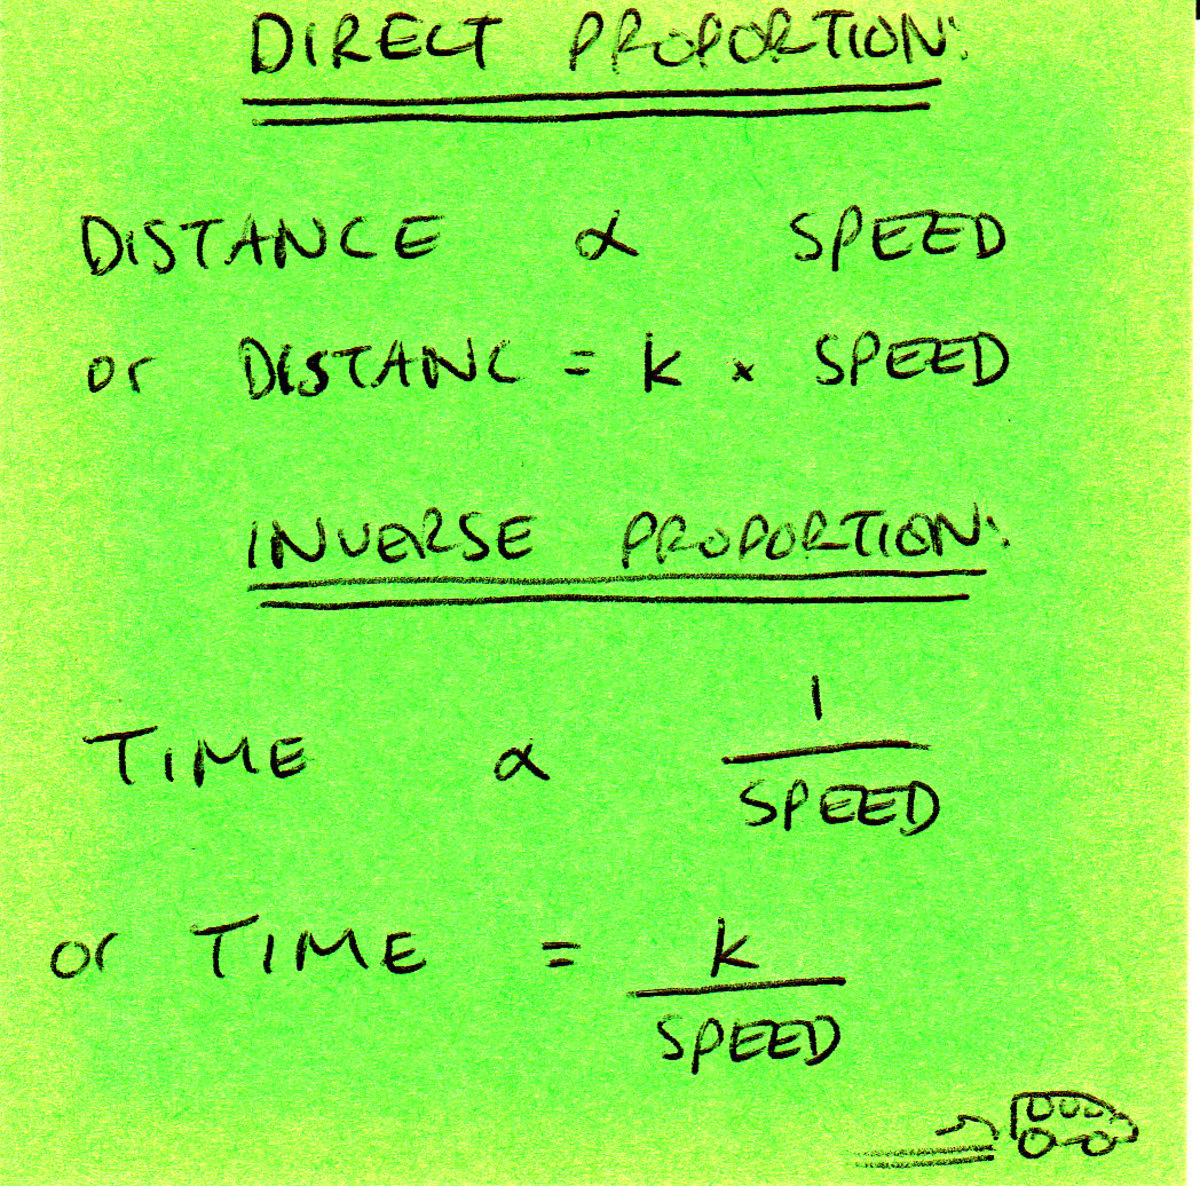 Direct vs Inverse Proportionality.